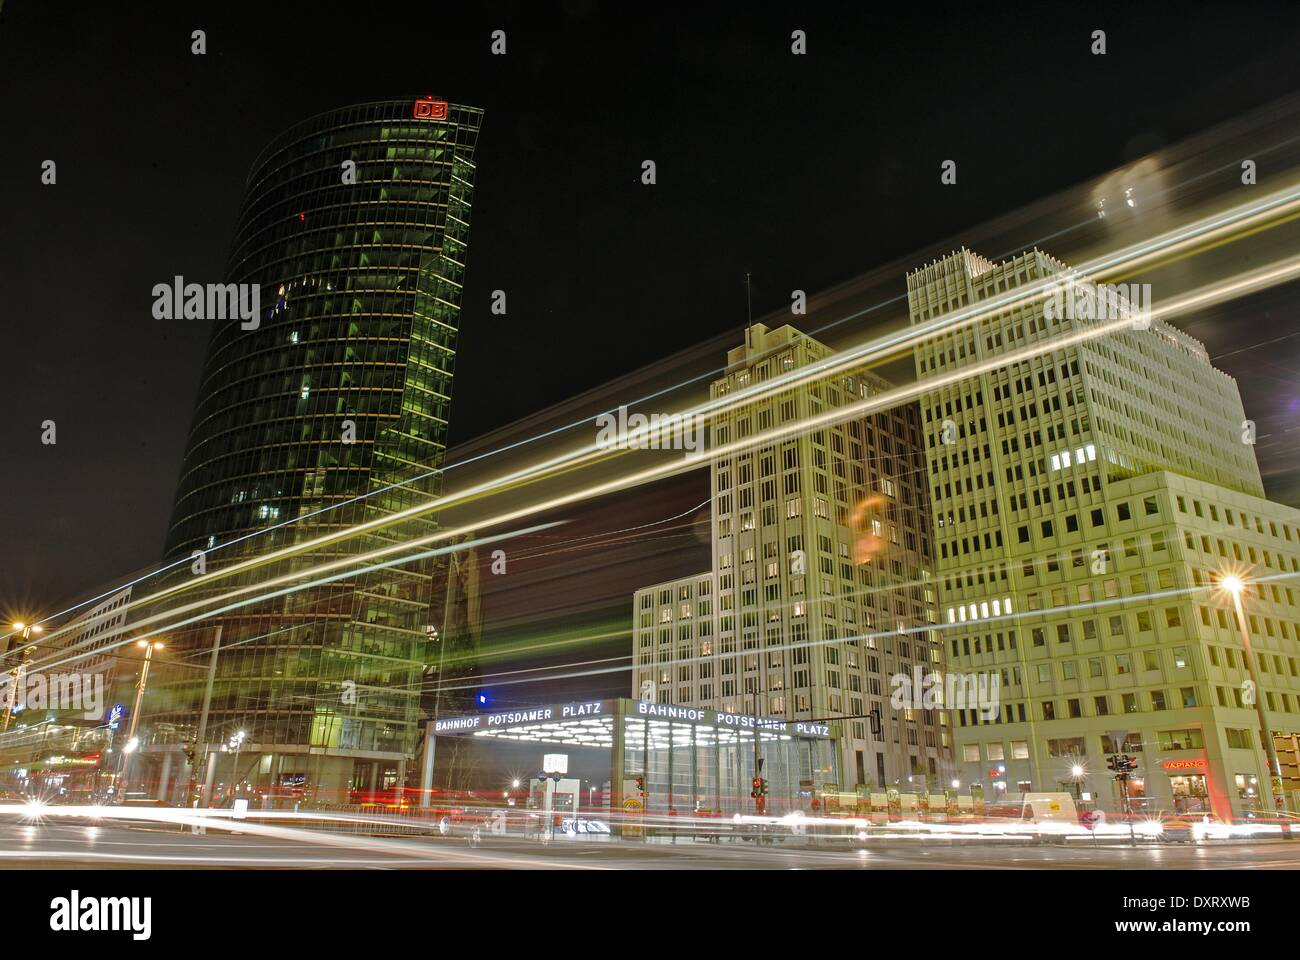 Berlin, Germany. 29th Mar, 2014. Bus services and cars pass by the unlit office highrise offices of the Deutsche Bahn (DB) during the so called 'Earth Hour' event at Potsdamer Platz in Berlin, Germany, 29 March 2014. 'Earth Hour' is a worldwide event which aims to set a sign for environmental protection and to draw attention to environmental awareness. Photo: Henning Kaiser/dpa/Alamy Live News - Stock Image